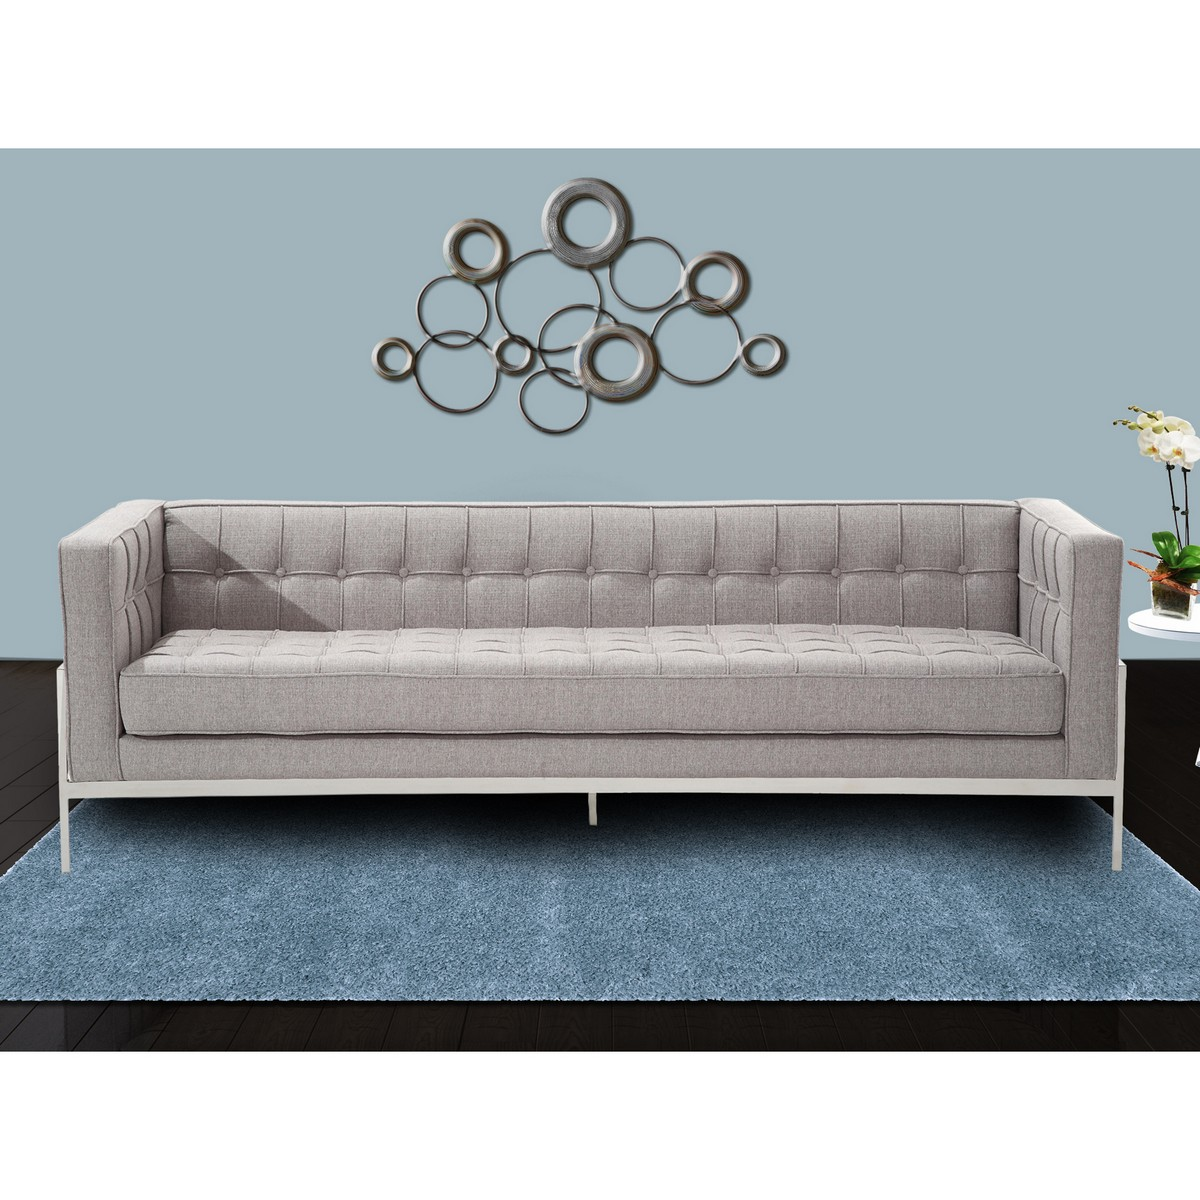 Armen Living Andre Contemporary Sofa In Gray Tweed and Stainless Steel